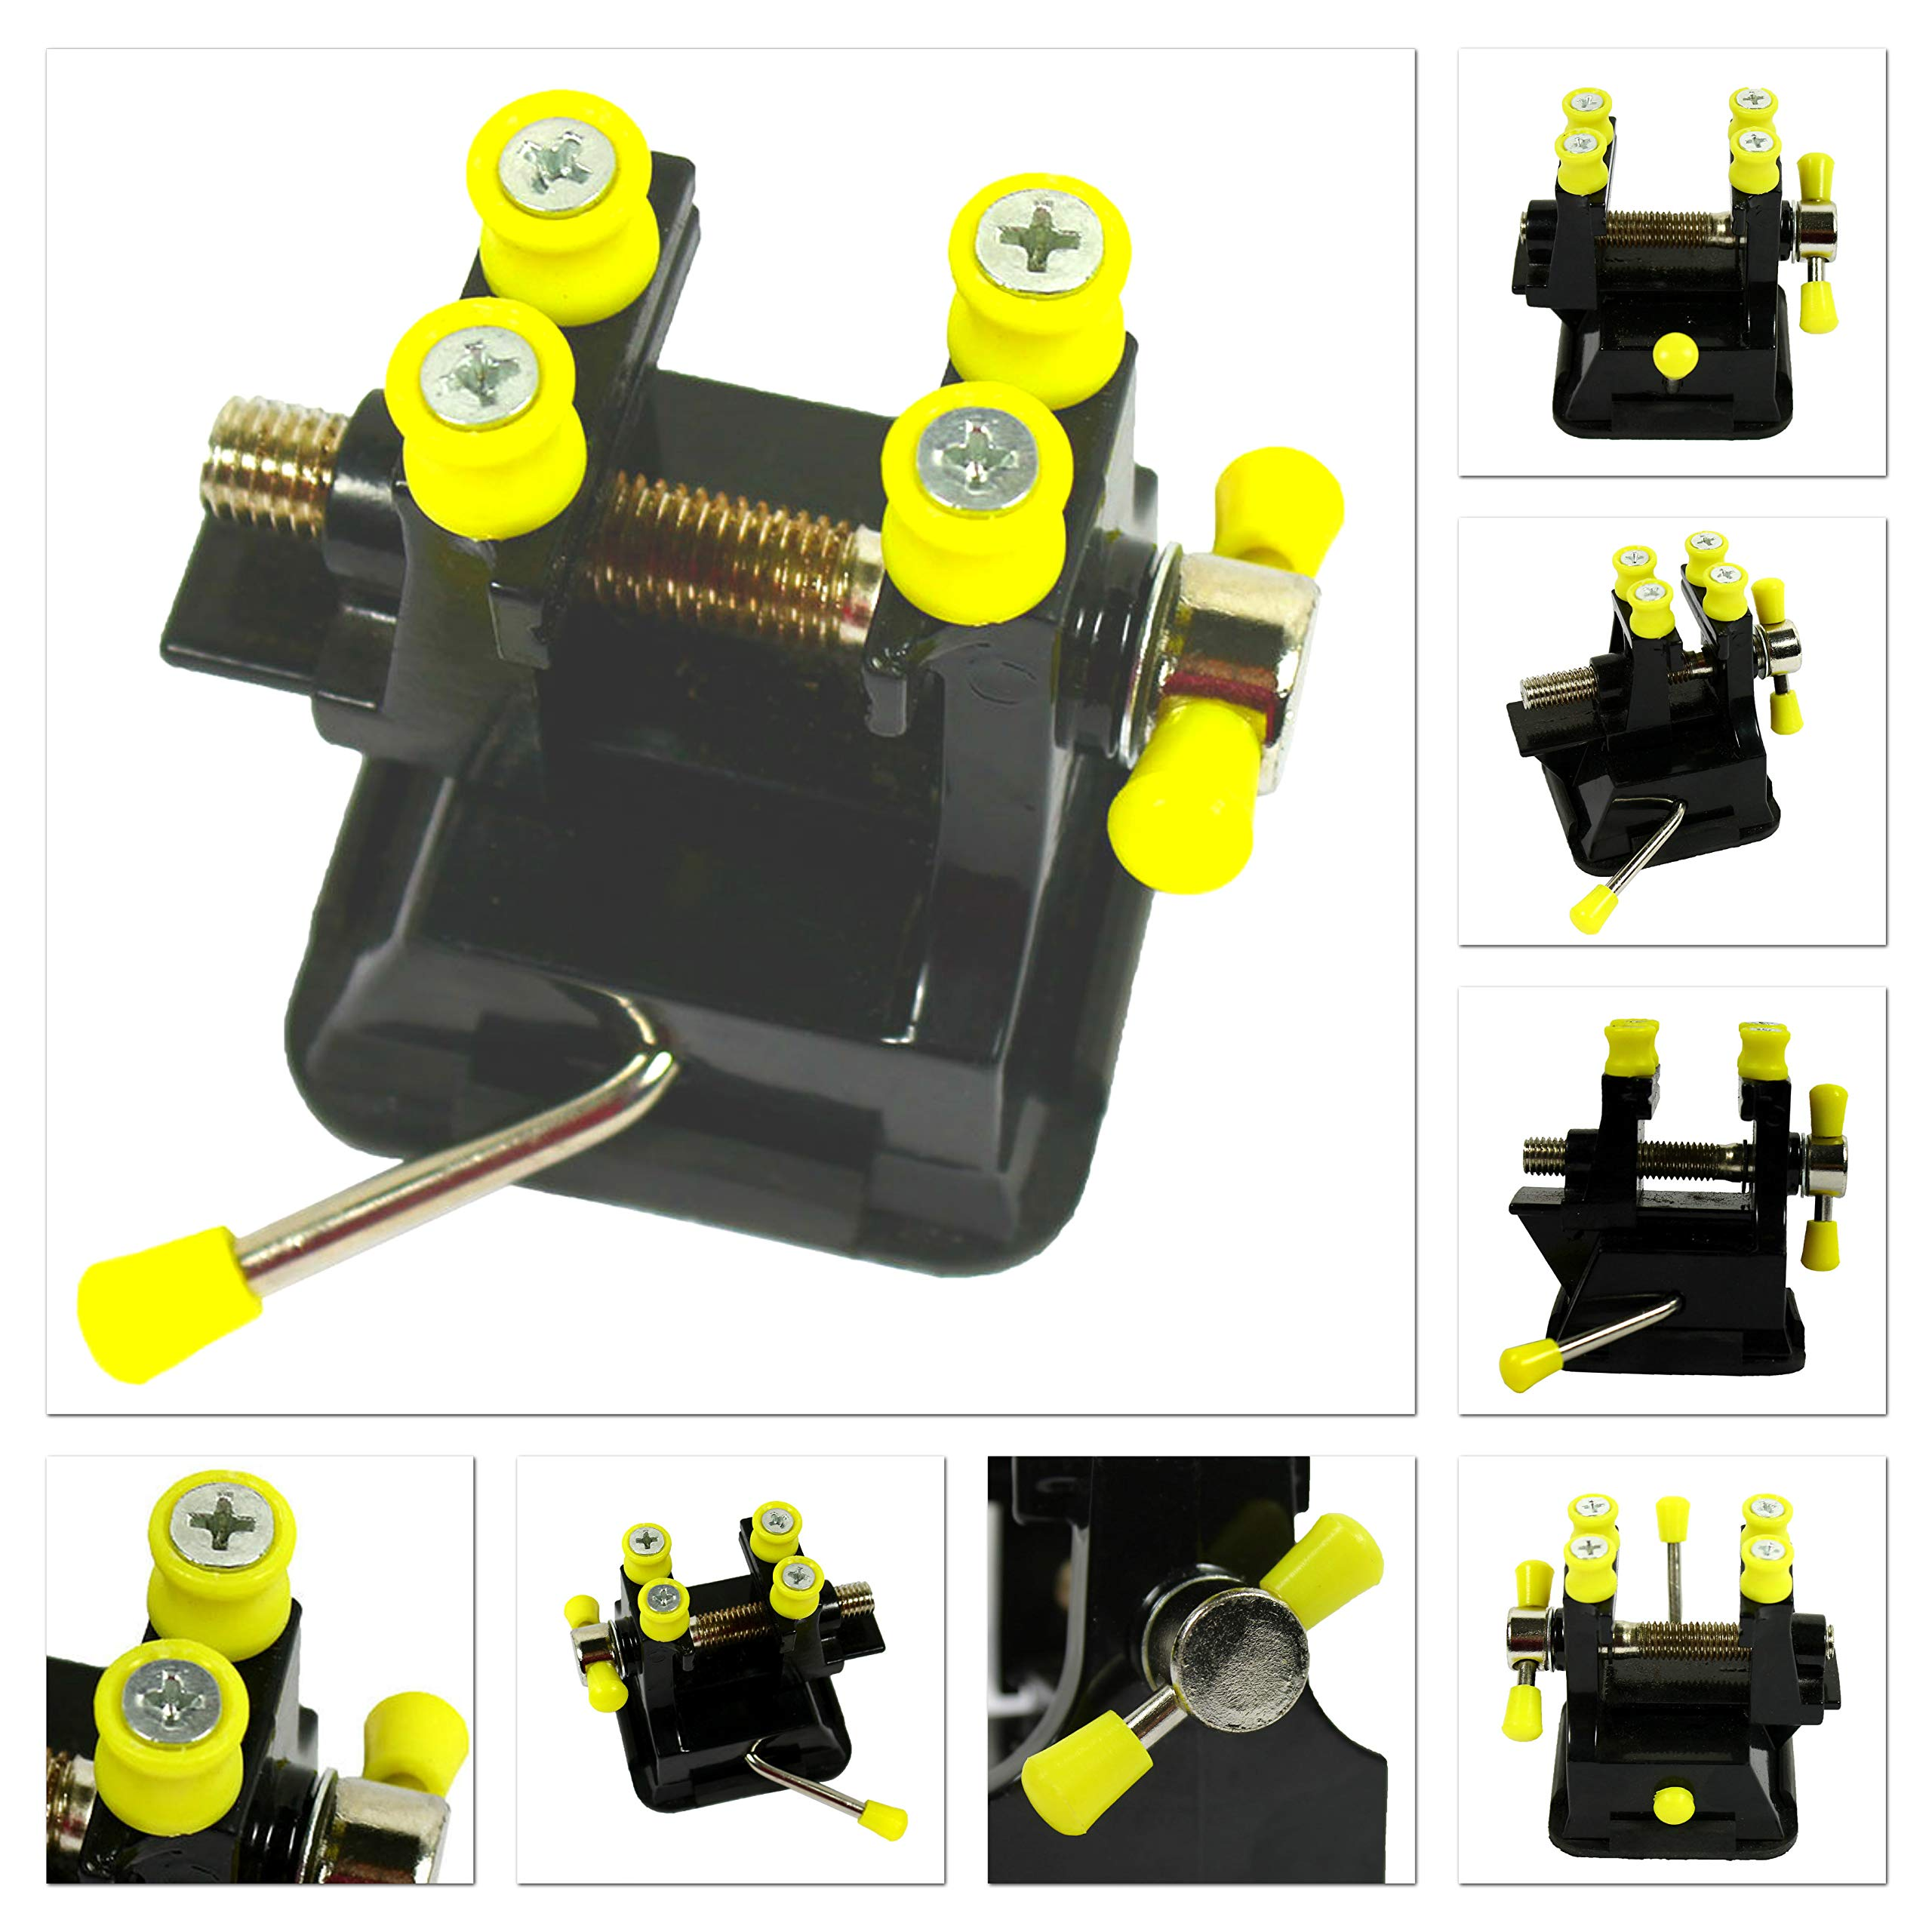 Miniature Vise Small Jewelers Hobby Clamp On Table Bench Tool Vice, Suction Cup Non-Scratching, DIY Jewelry Craft Model Repair By YOLO Stores by YOLO Stores